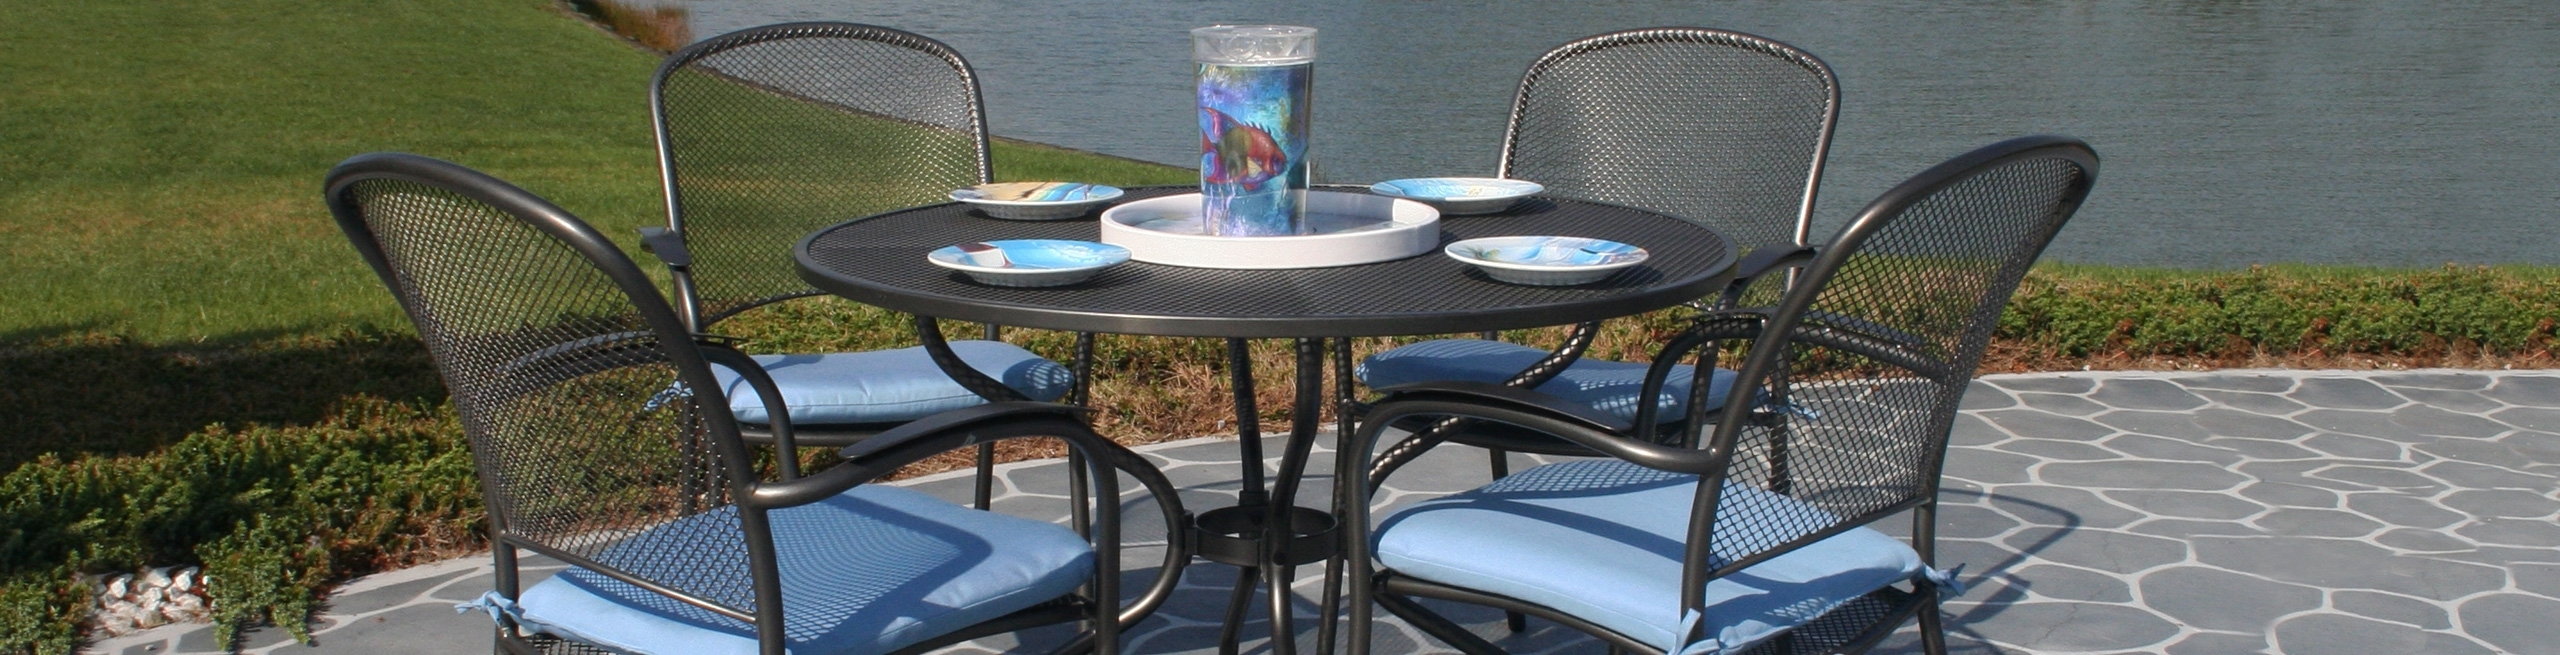 Best And Newest Outdoor Patio Furniture: Kettler Patio Furniture Inside Kettler Patio Umbrellas (View 2 of 20)